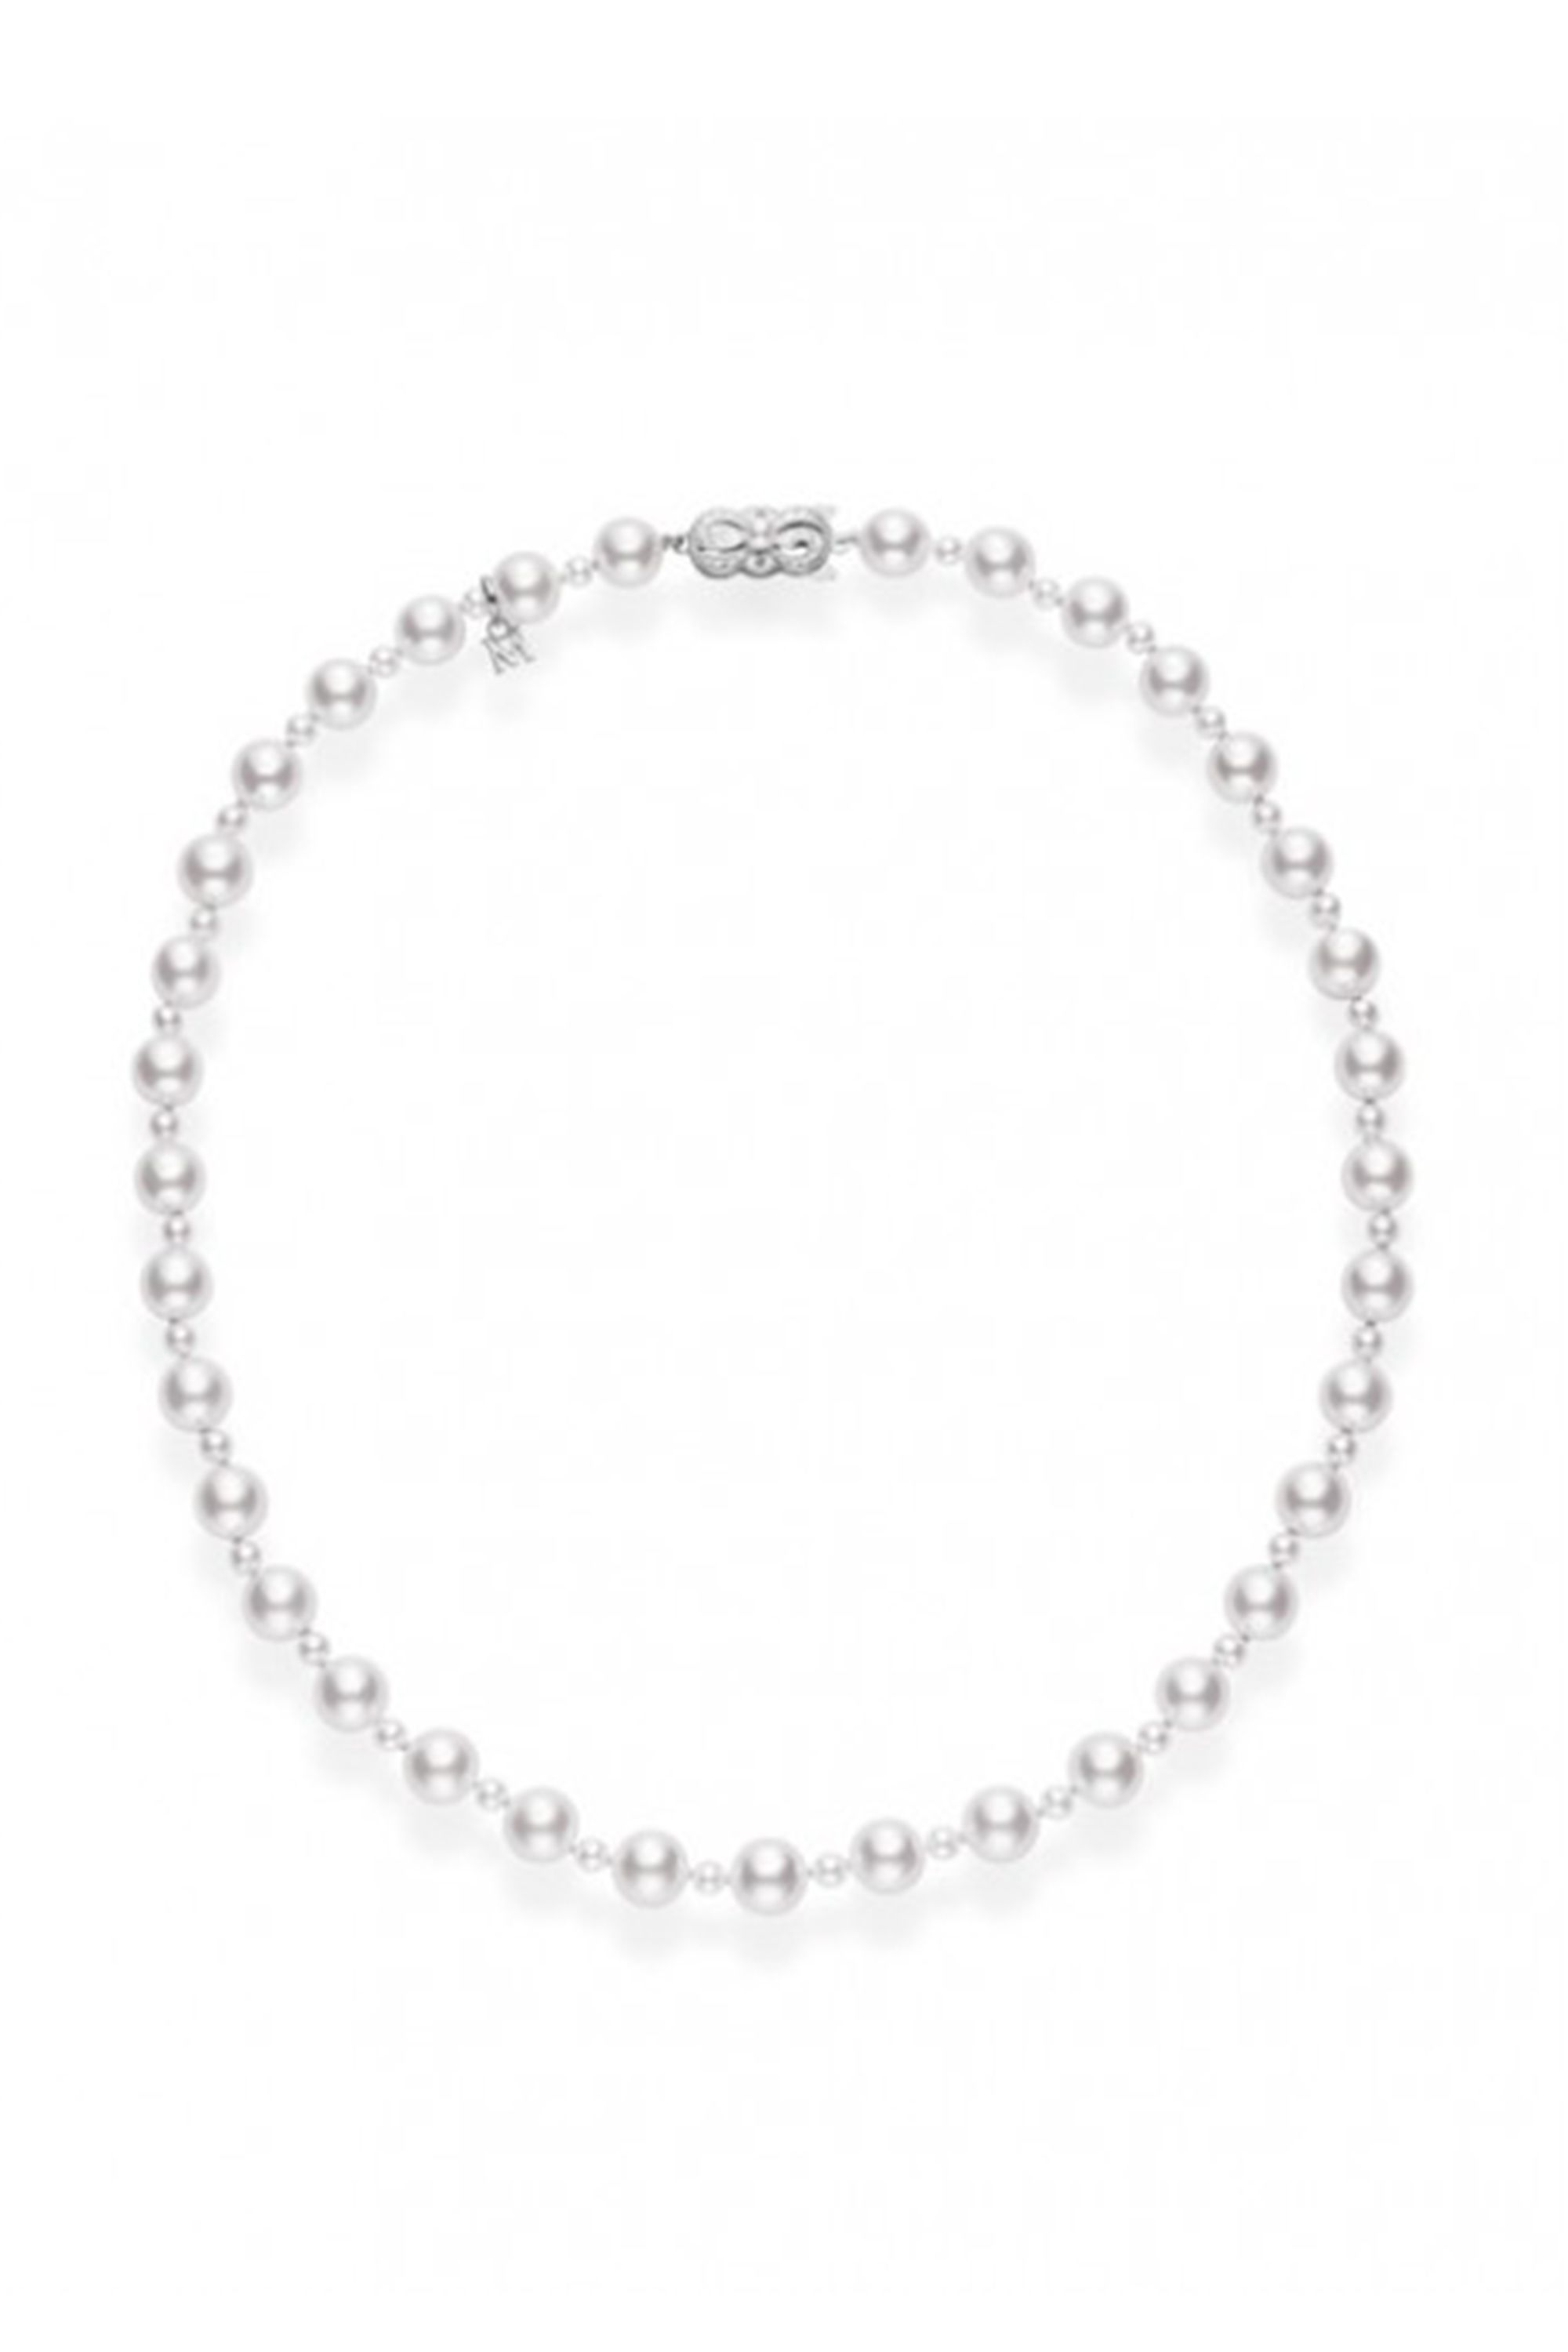 "<p>Pearls tend to elicit polarizing thoughts on whether they're classic or dated, but we  definitely have the former opinion. Nobody does a strand of pearls better than Mikimoto, whose founder Mikimoto Kōkichi is credited for creating the first cultured pearl in the 1890s.  </p><p><em>Mikimoto Multi Akoya Cultured Pearl Strand, $4,170; </em><a href=""http://www.mikimotoamerica.com/categories/strands/multi-akoya-cultured-pearl-strand-2"" target=""_blank""><em>mikimotoamerica.com</em></a></p>"